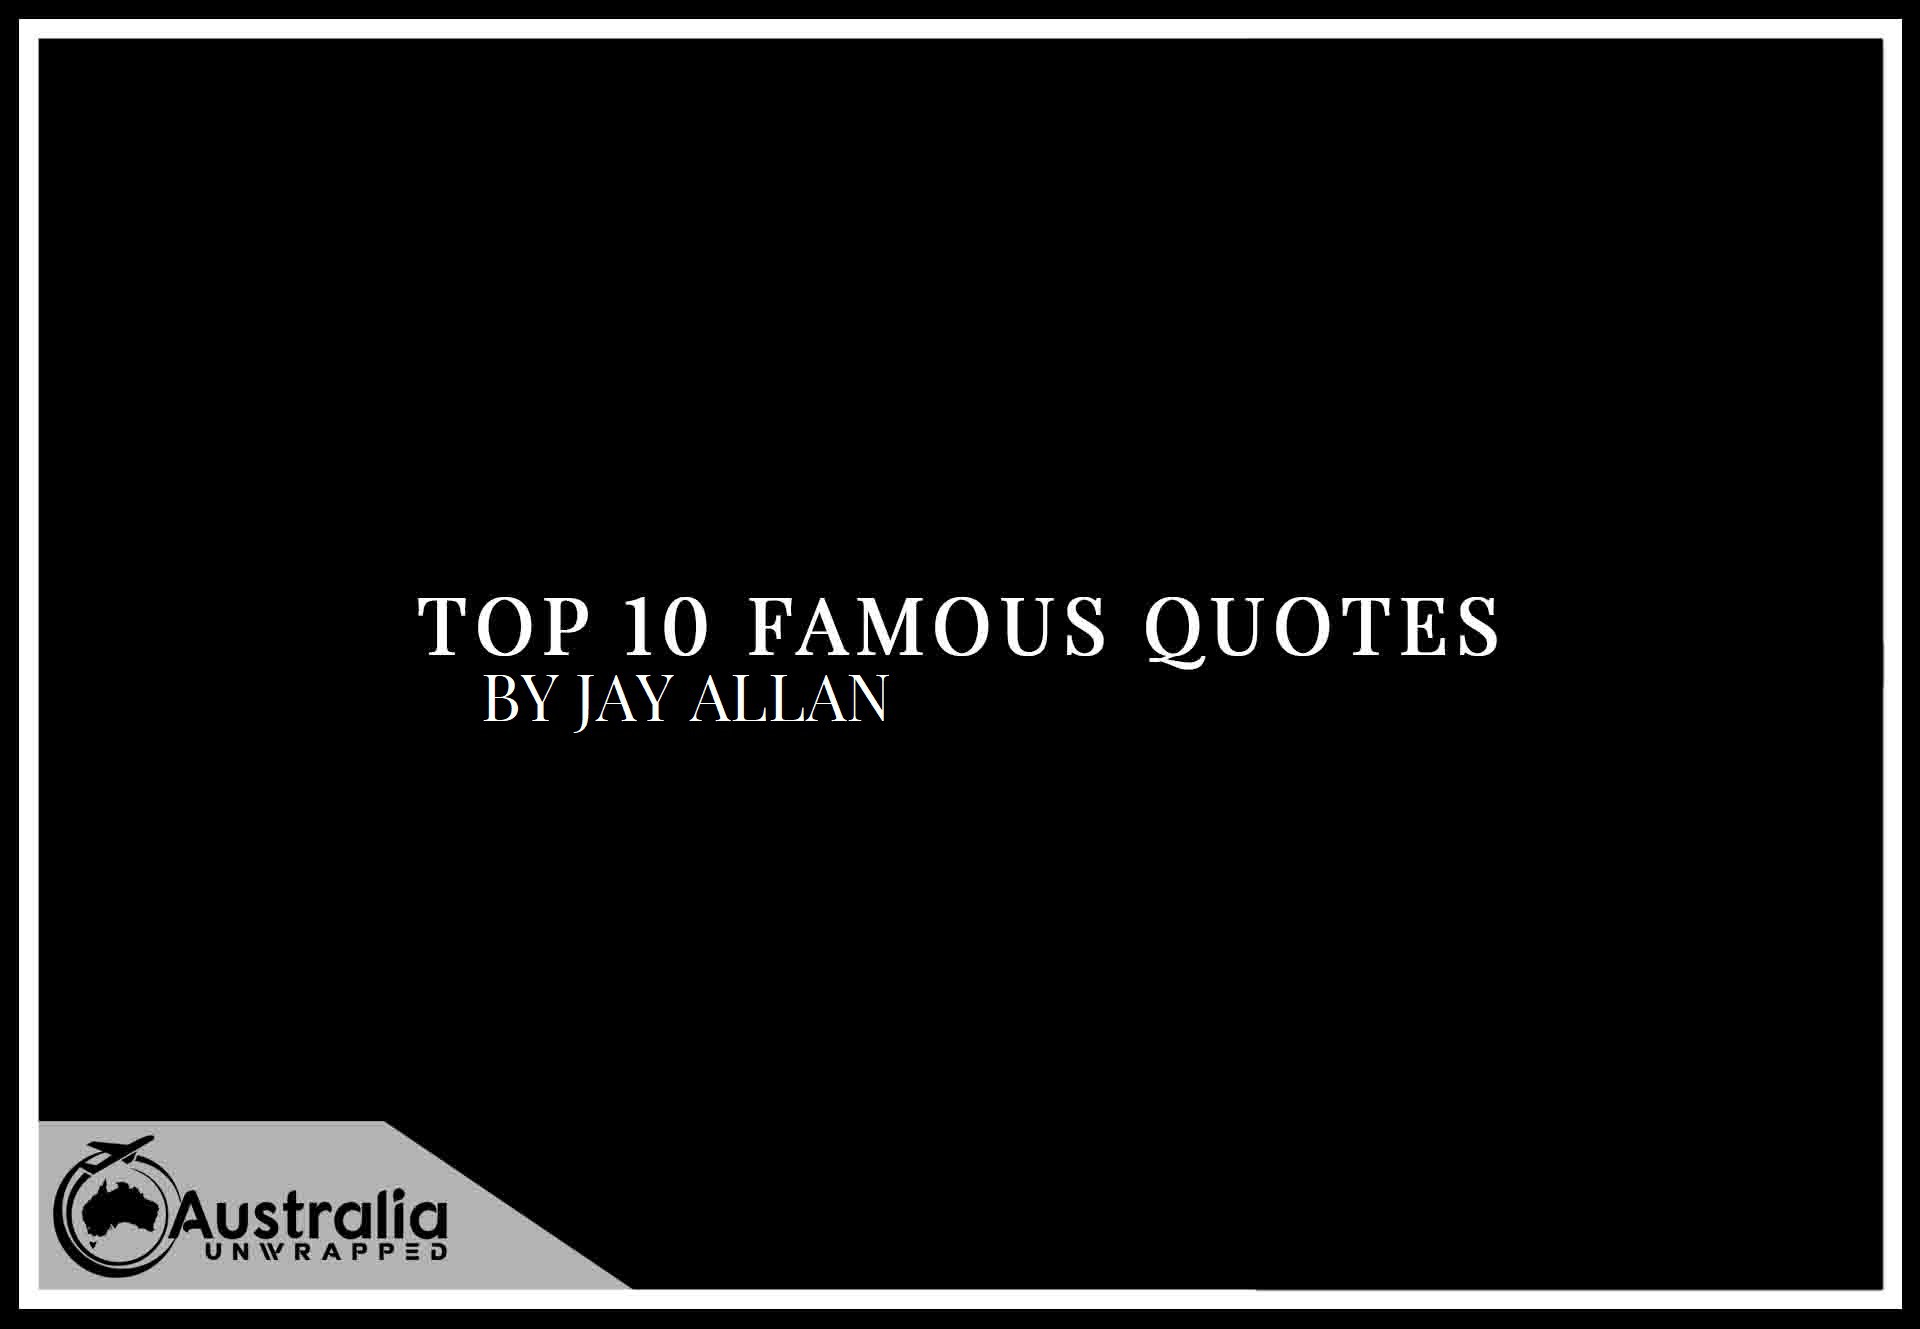 Top 10 Famous Quotes by Author Jay Allan